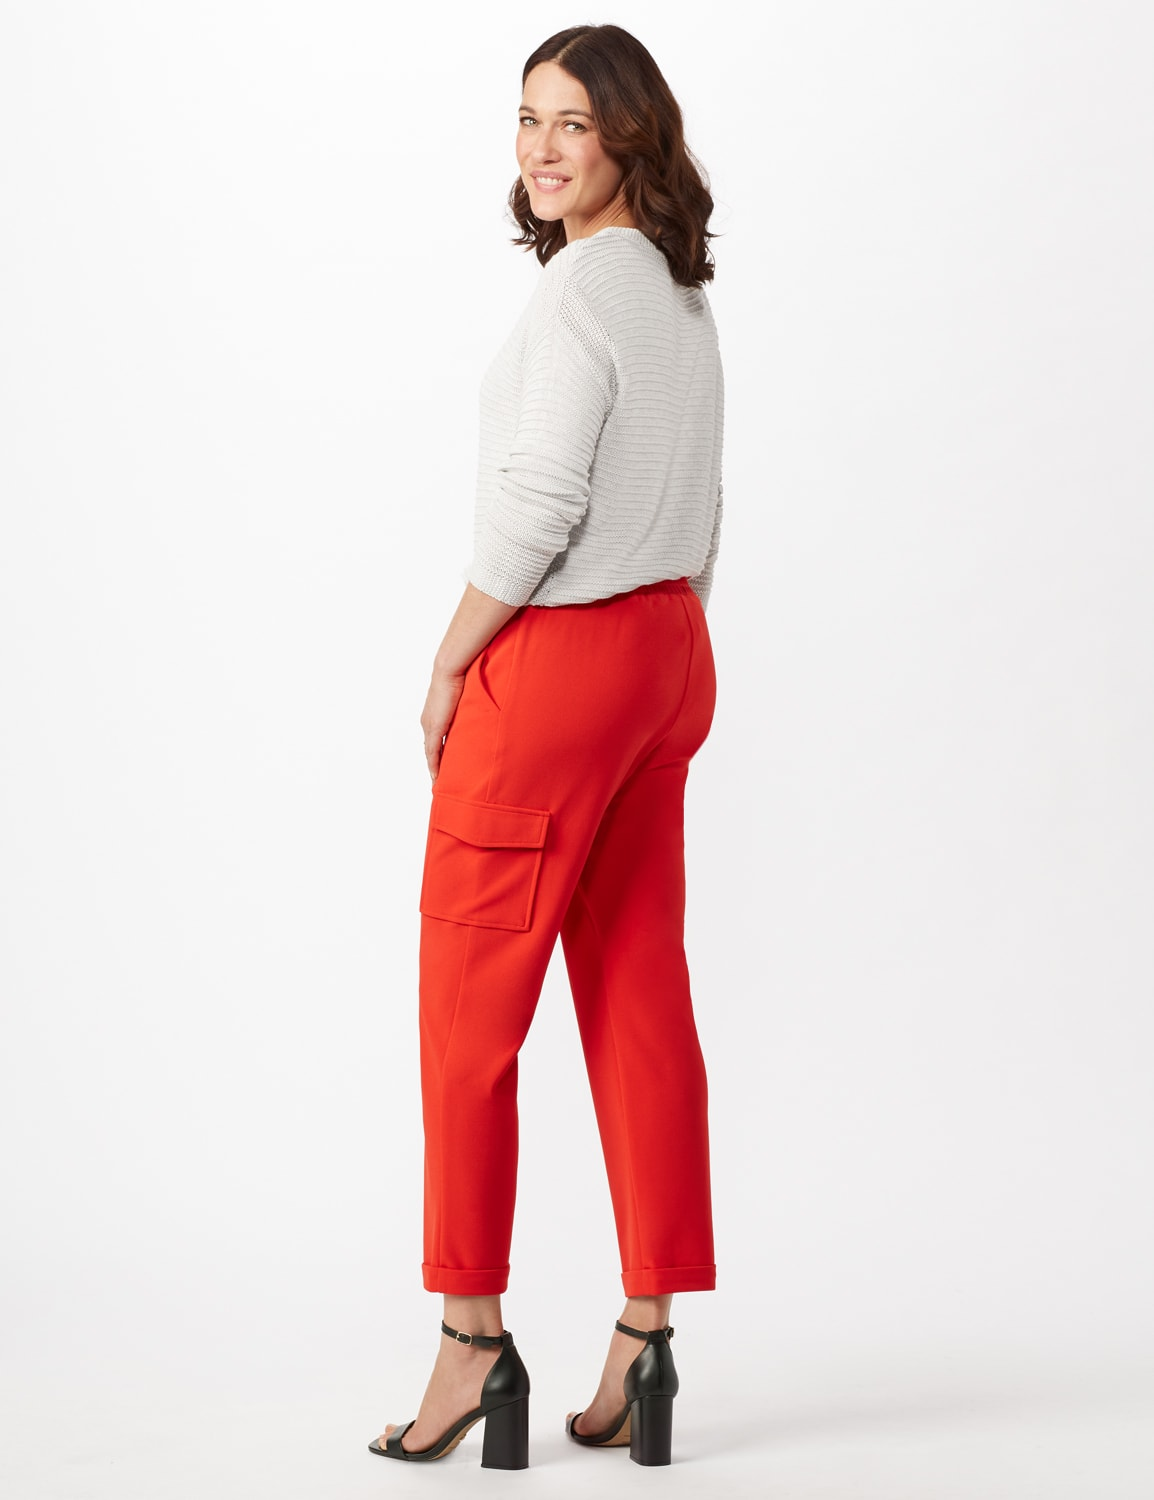 Drawstring Ankle Length Cargo Pants - Tomato - Back